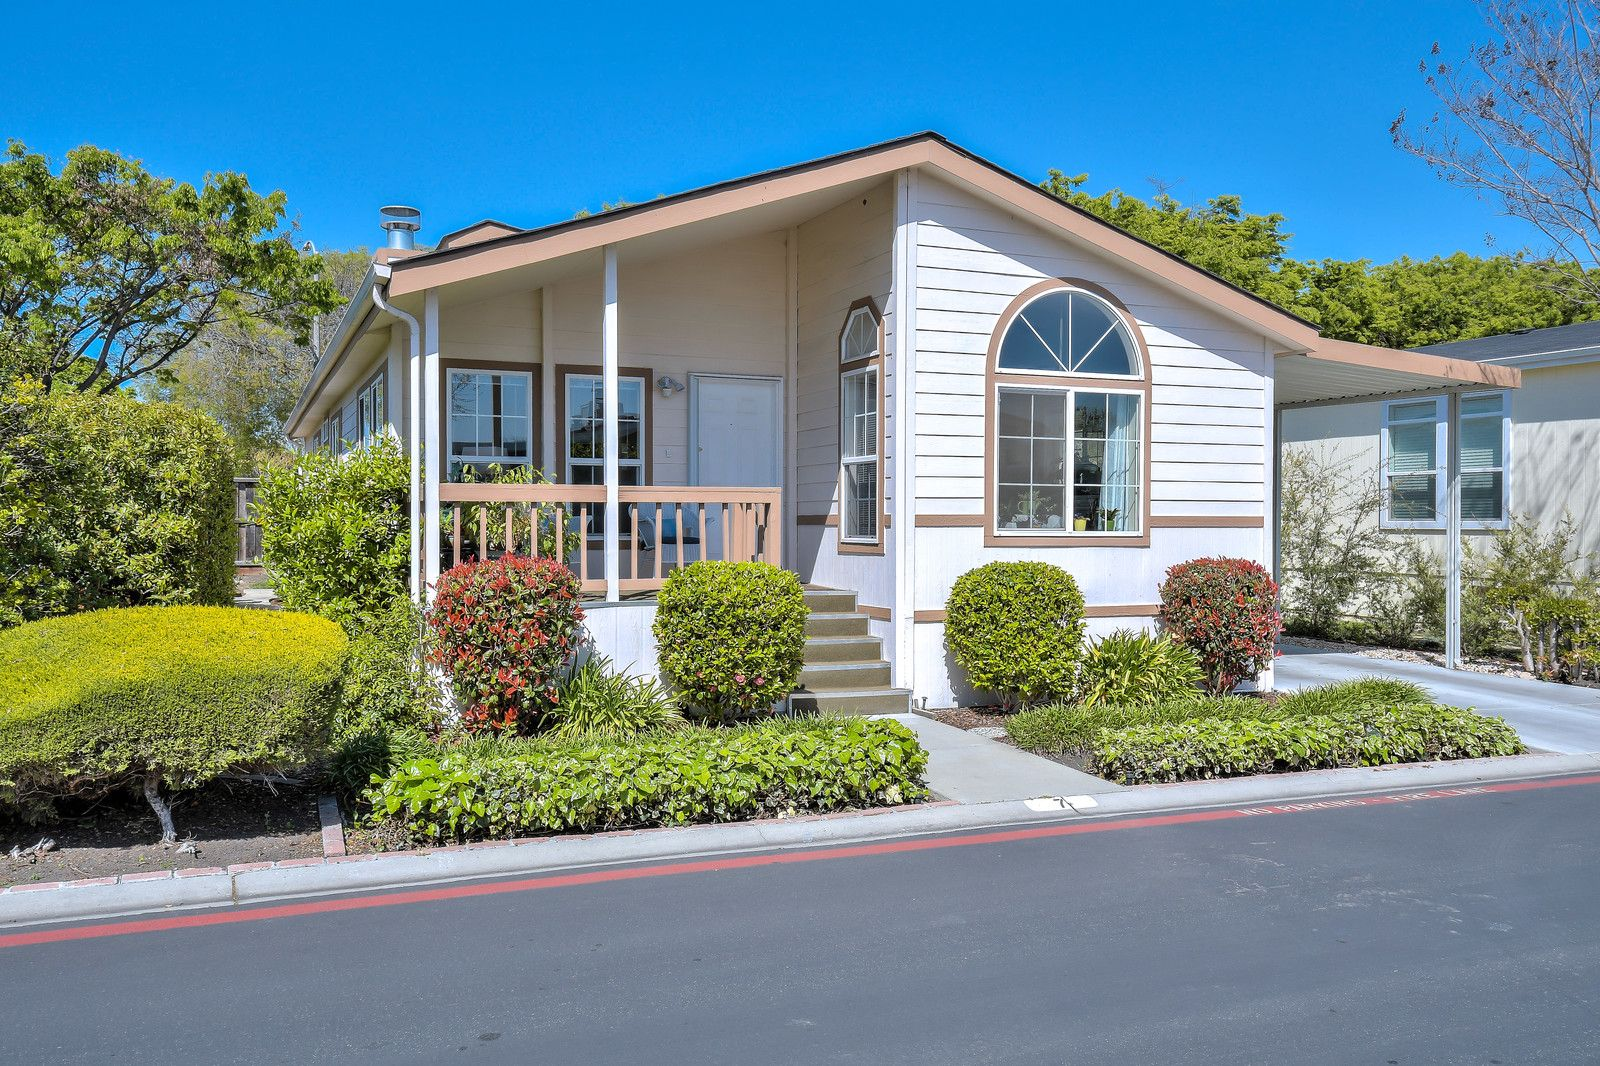 2000 Silvercrest Mobile Manufactured Home In Sunnyvale Ca Via Mhvillage Com Mobile Homes For Sale Ideal Home Manufactured Home